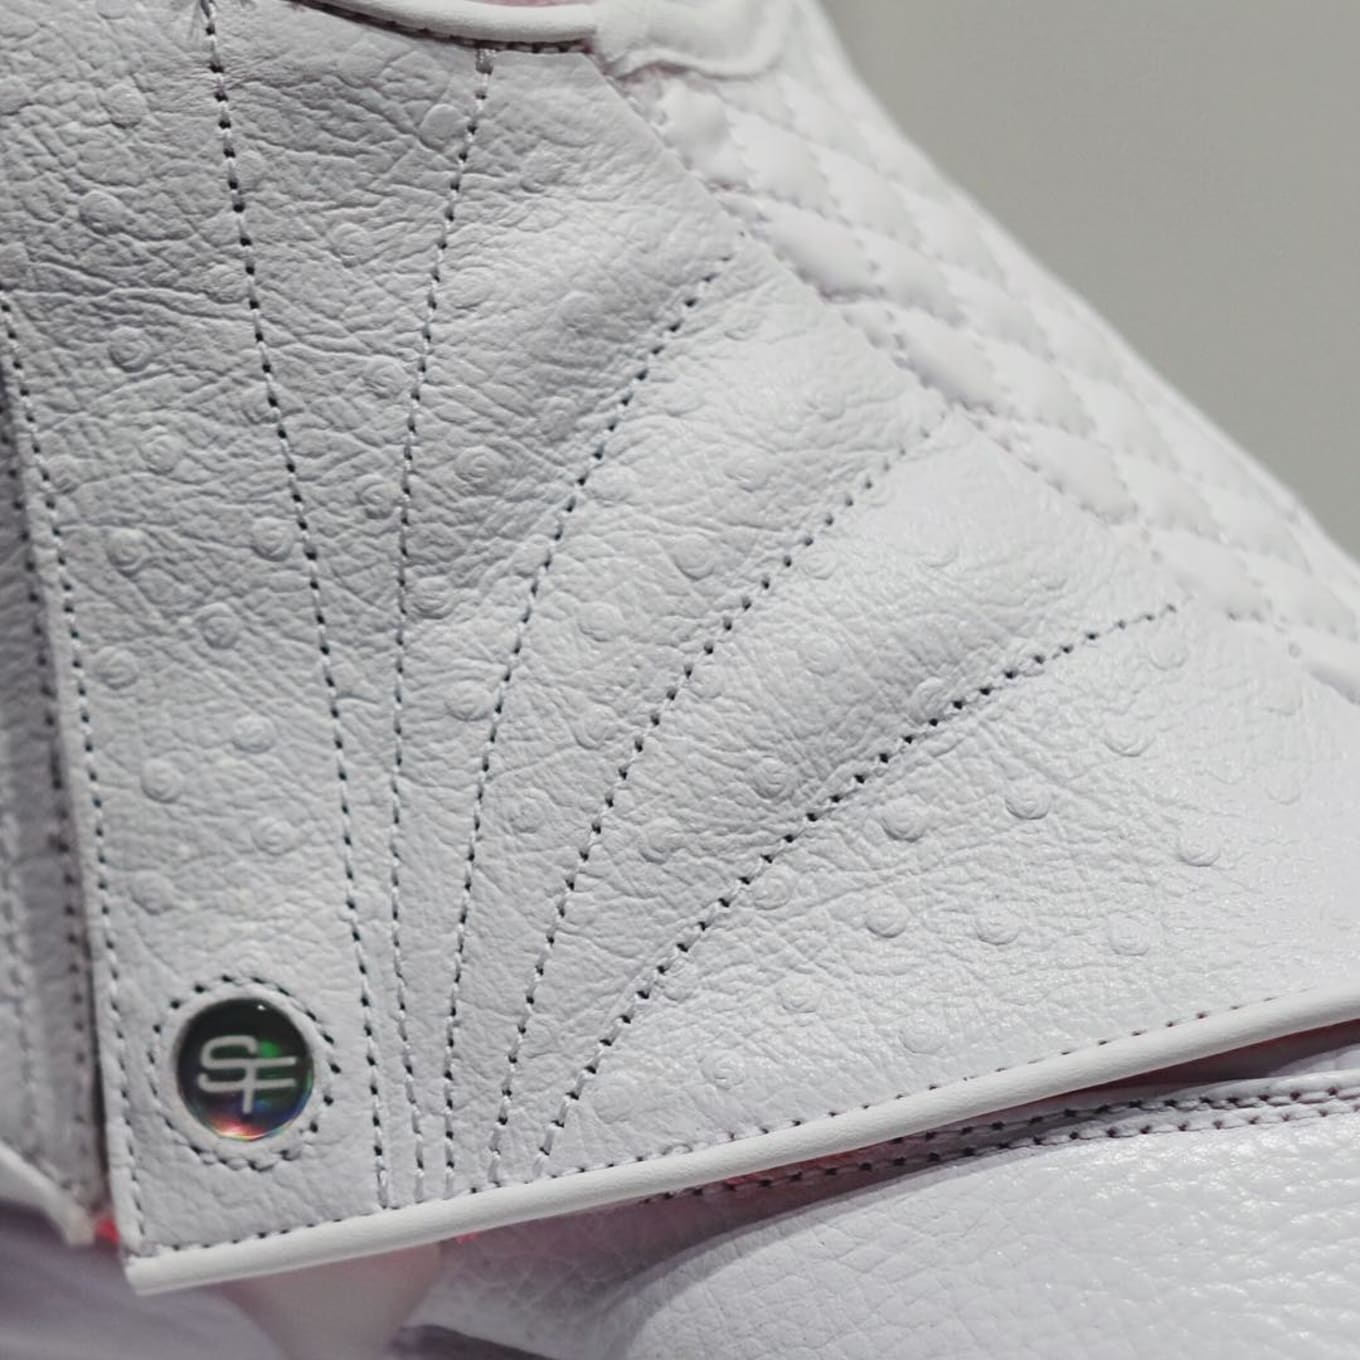 dc4bf120022cc4 SoleFly Is Next to Do an Air Jordan 16 Collaboration